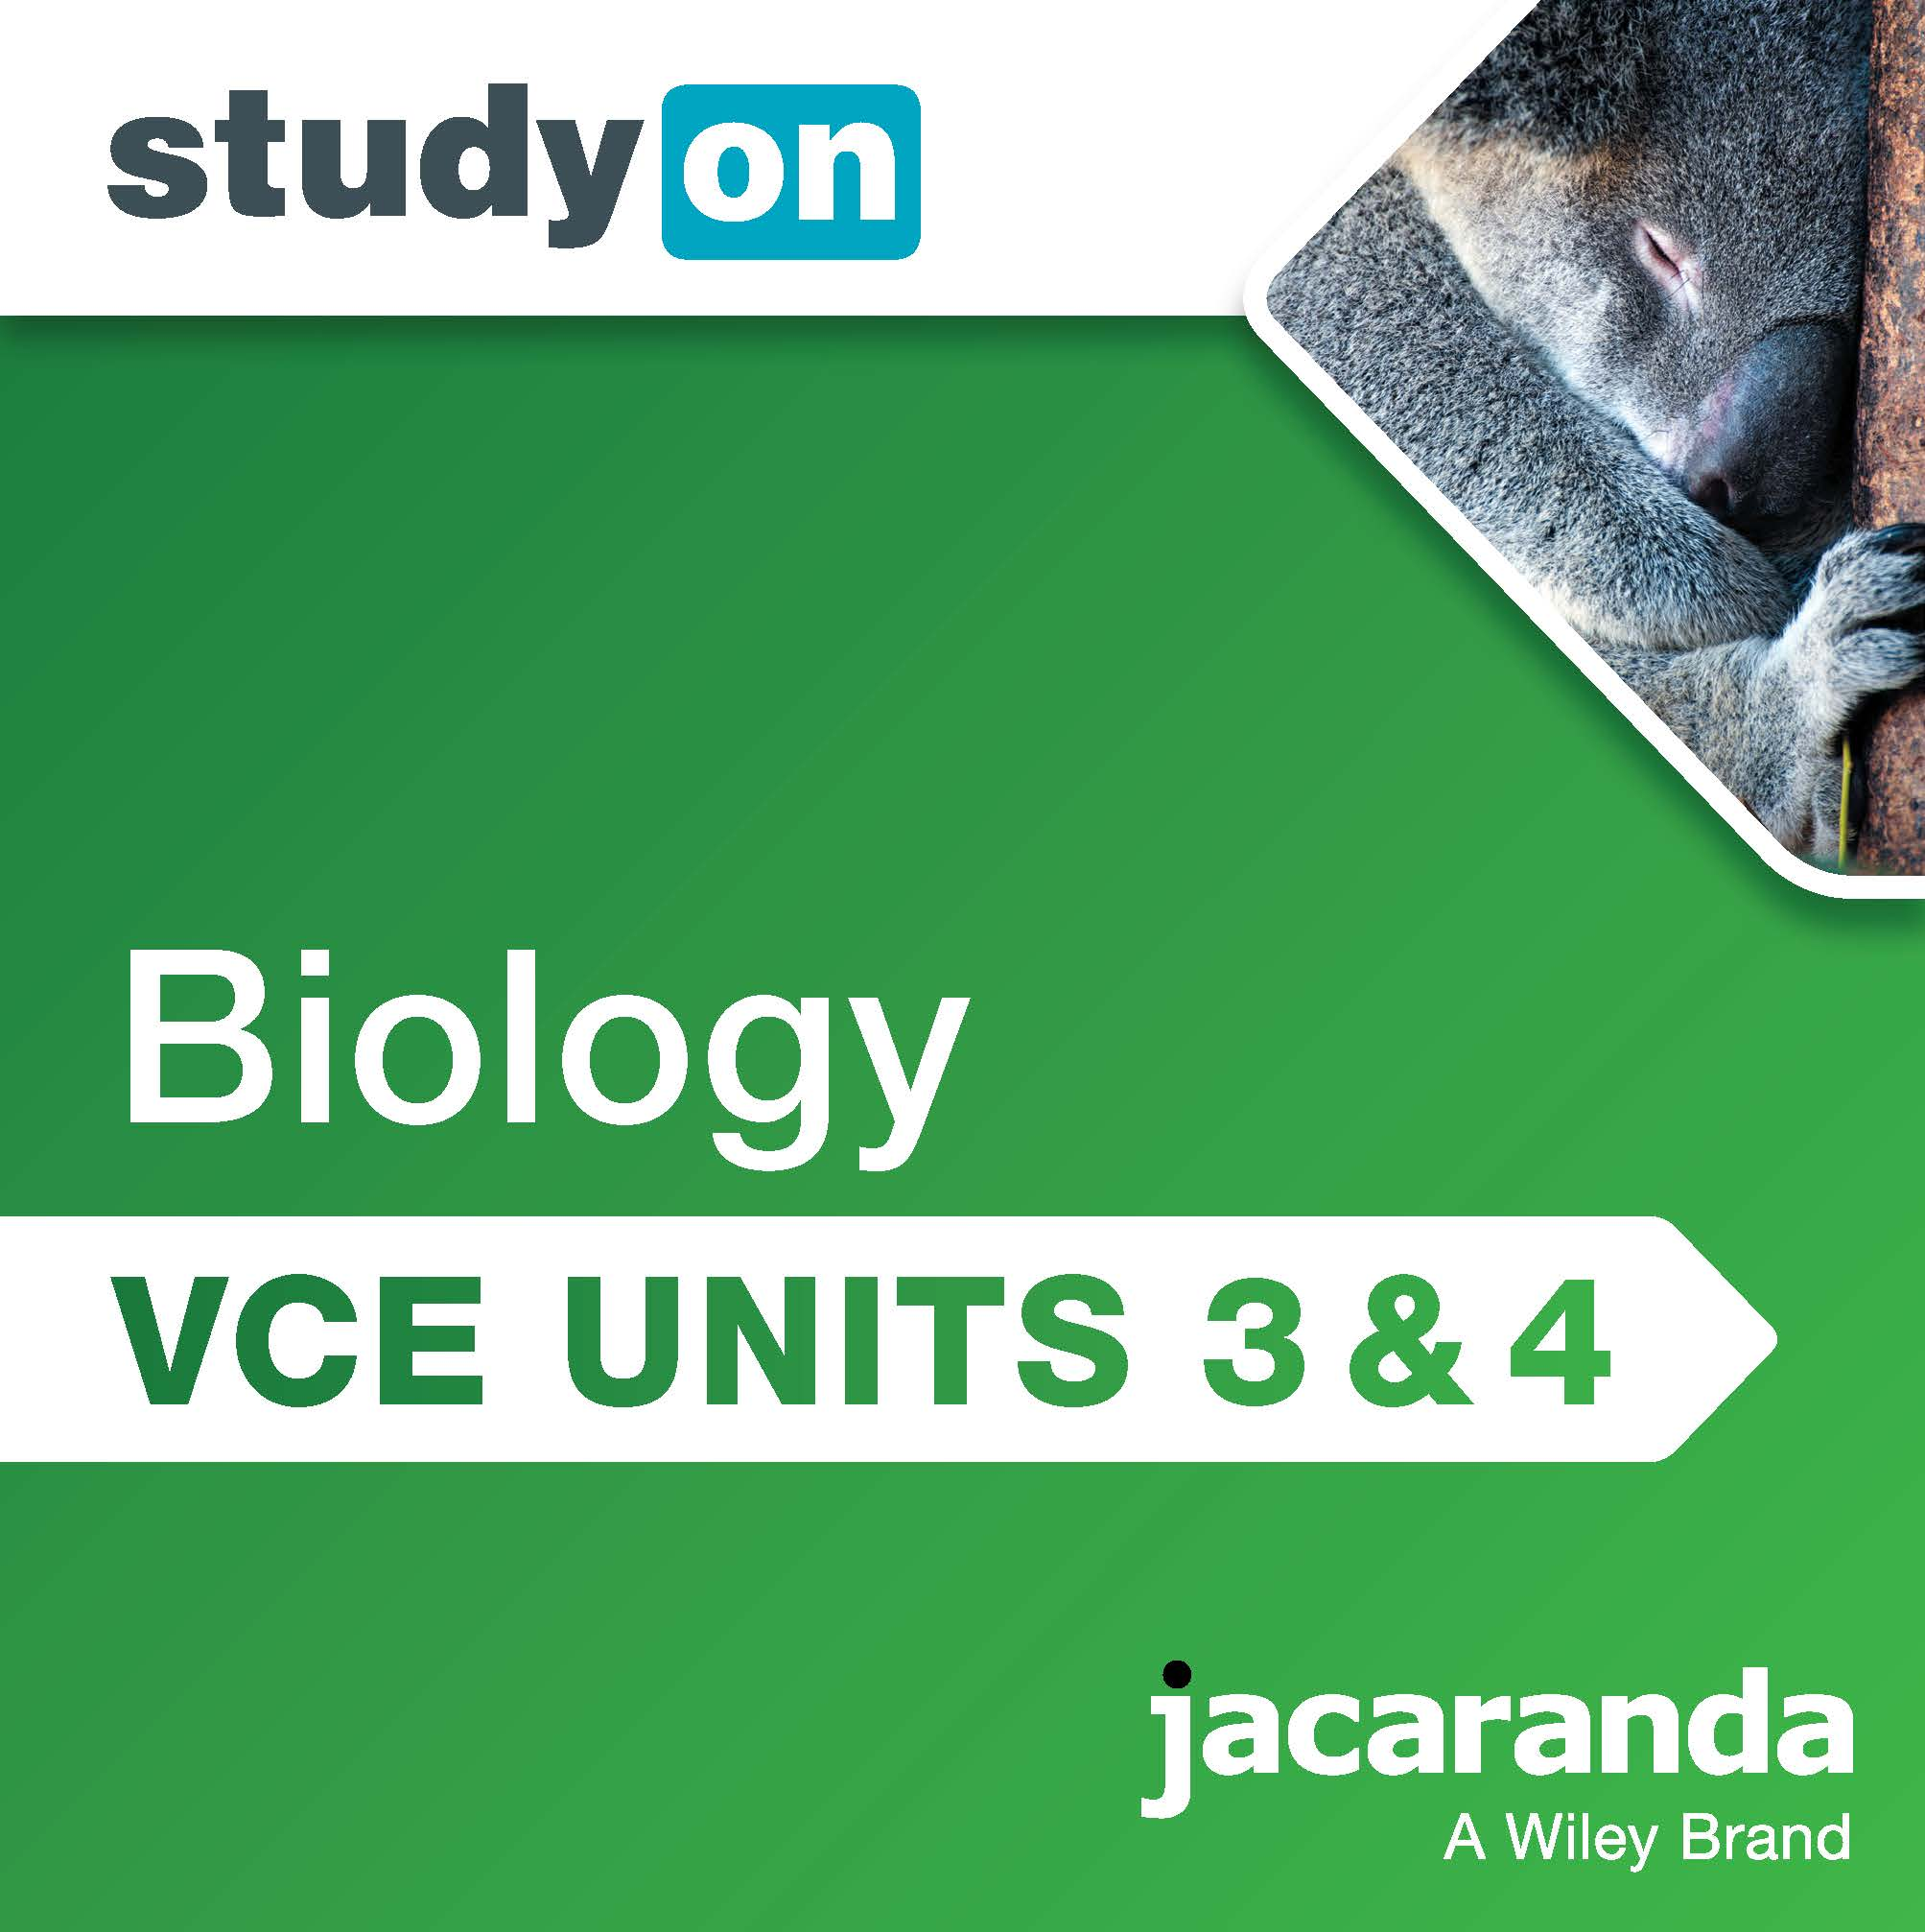 Studyon Jacaranda Norton Atlas Wiring Diagram Biology